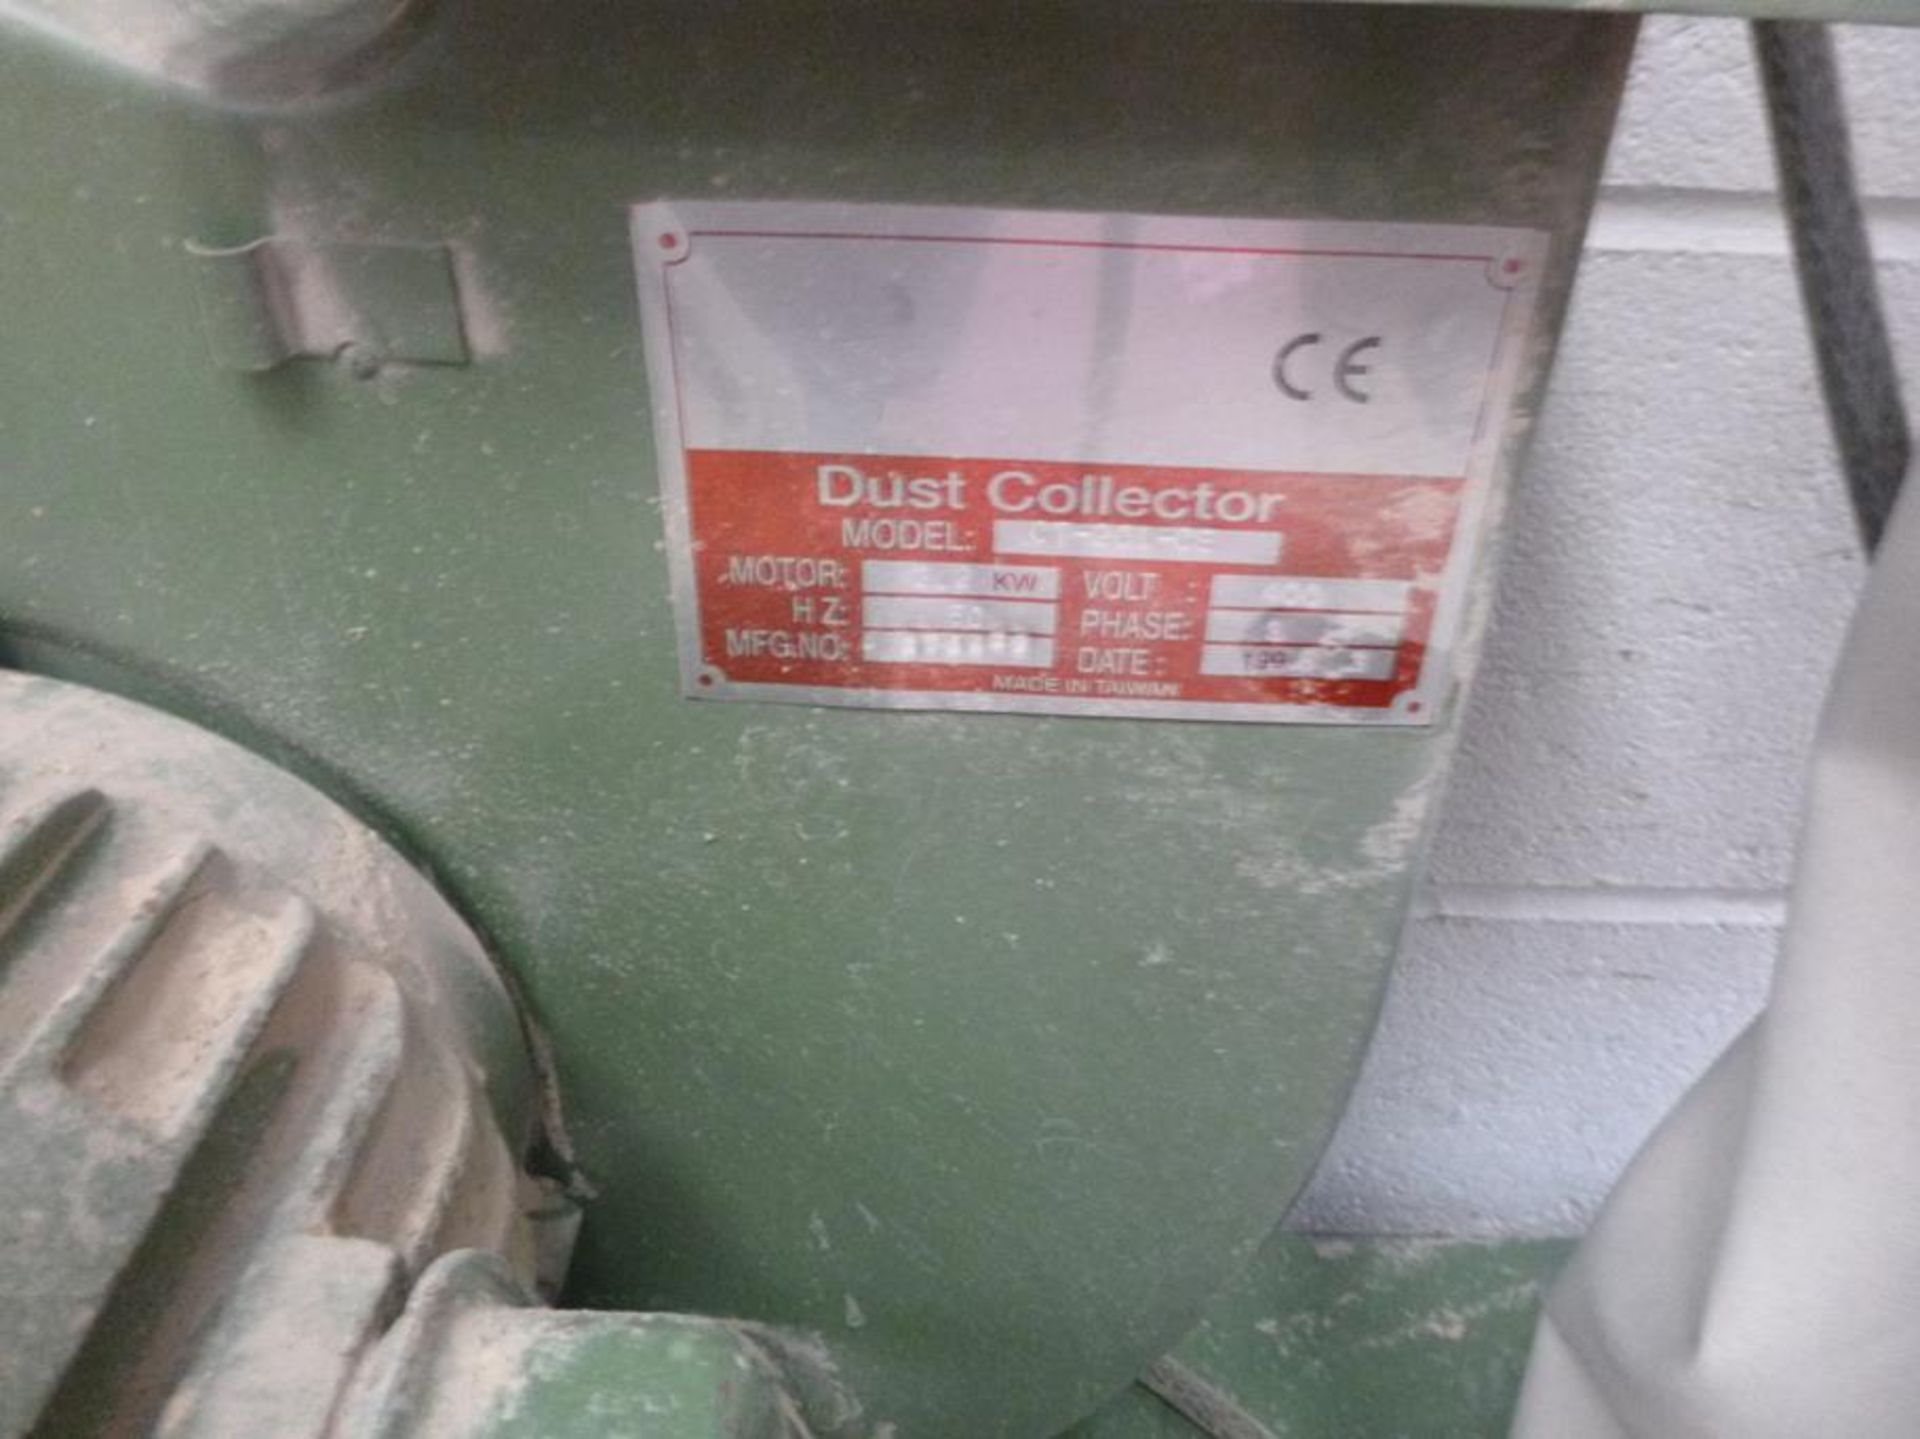 Lot 6 - Dust Collector CT-201-OE